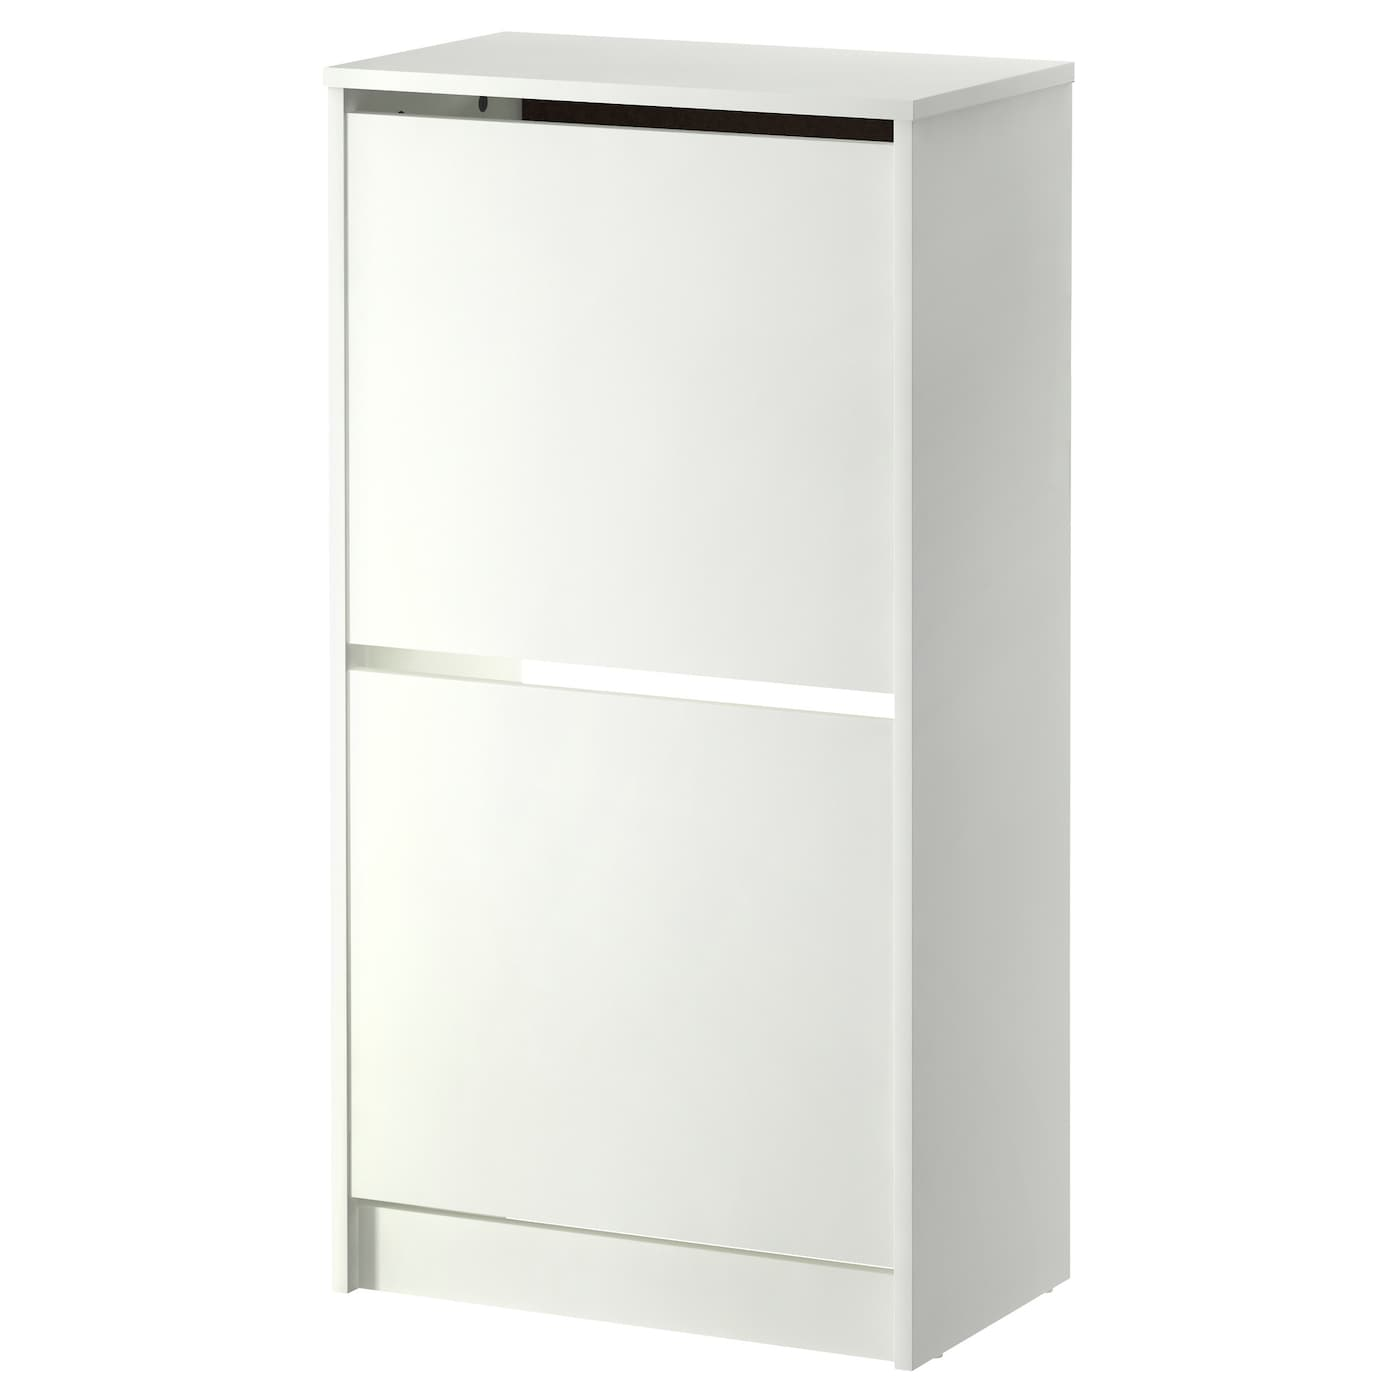 bissa armoire chaussures 2 casiers blanc 49 x 93 cm ikea. Black Bedroom Furniture Sets. Home Design Ideas